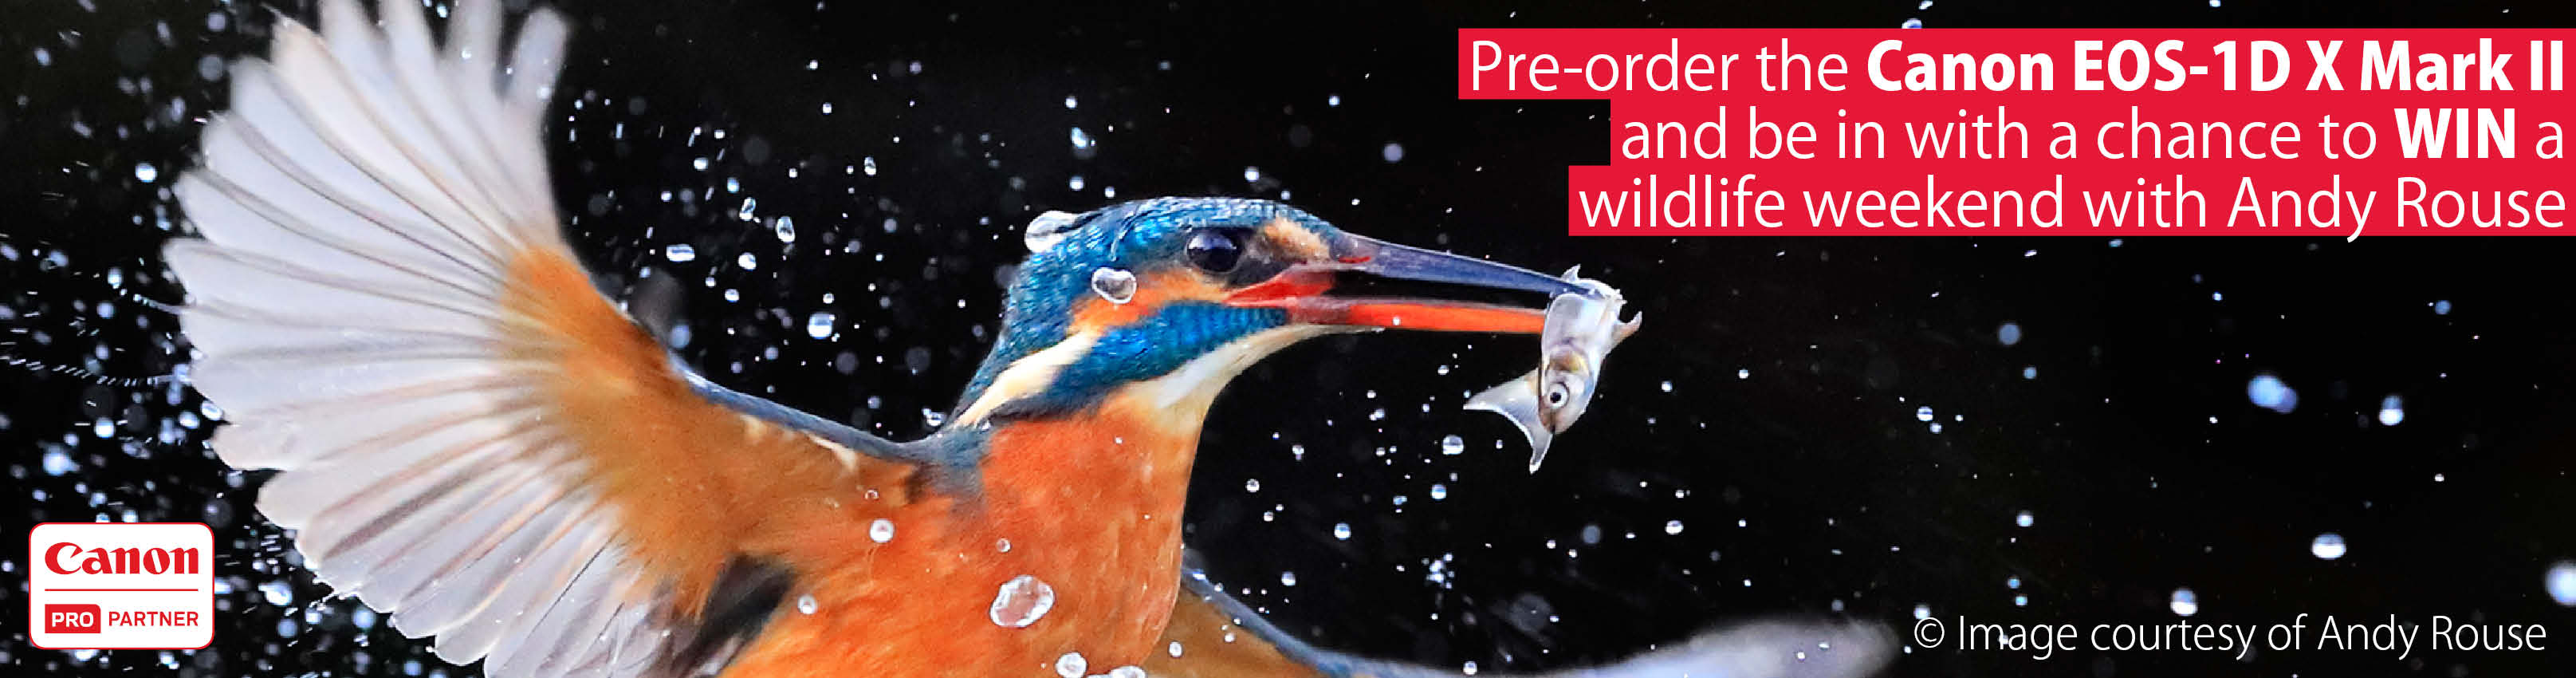 Win a wildlife photography weekend with the Canon EOS-1D X Mark II